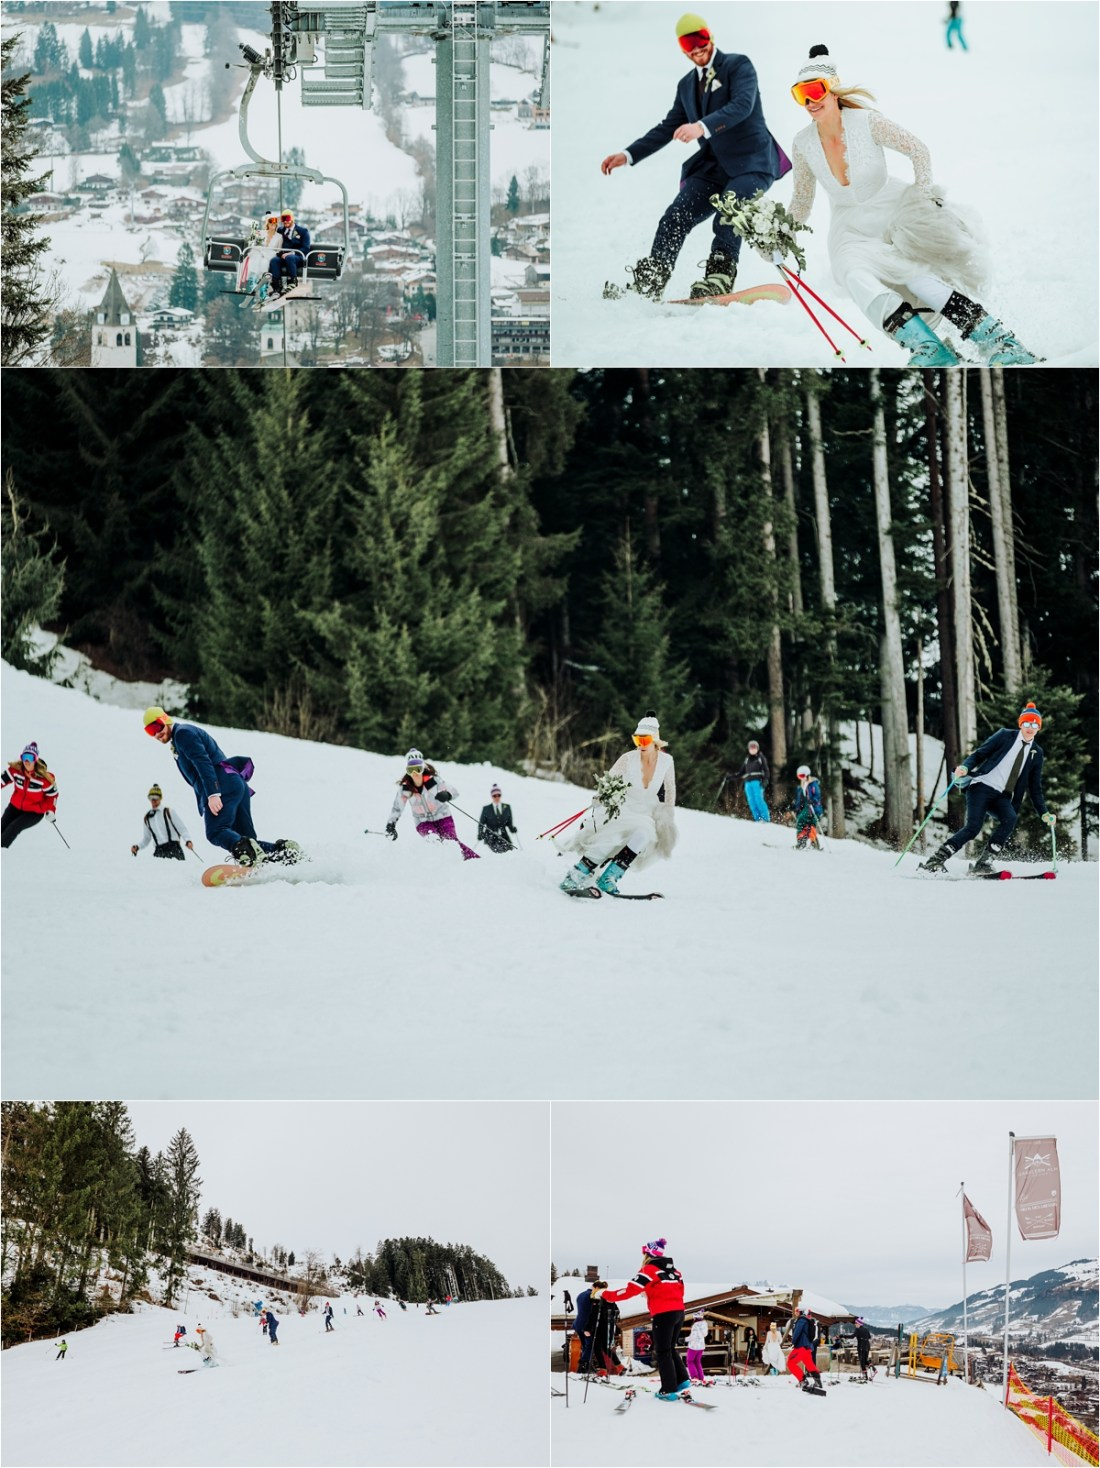 Bride and groom ski with their wedding party for their ski wedding in Kitzbühel by Wild Connections Photography